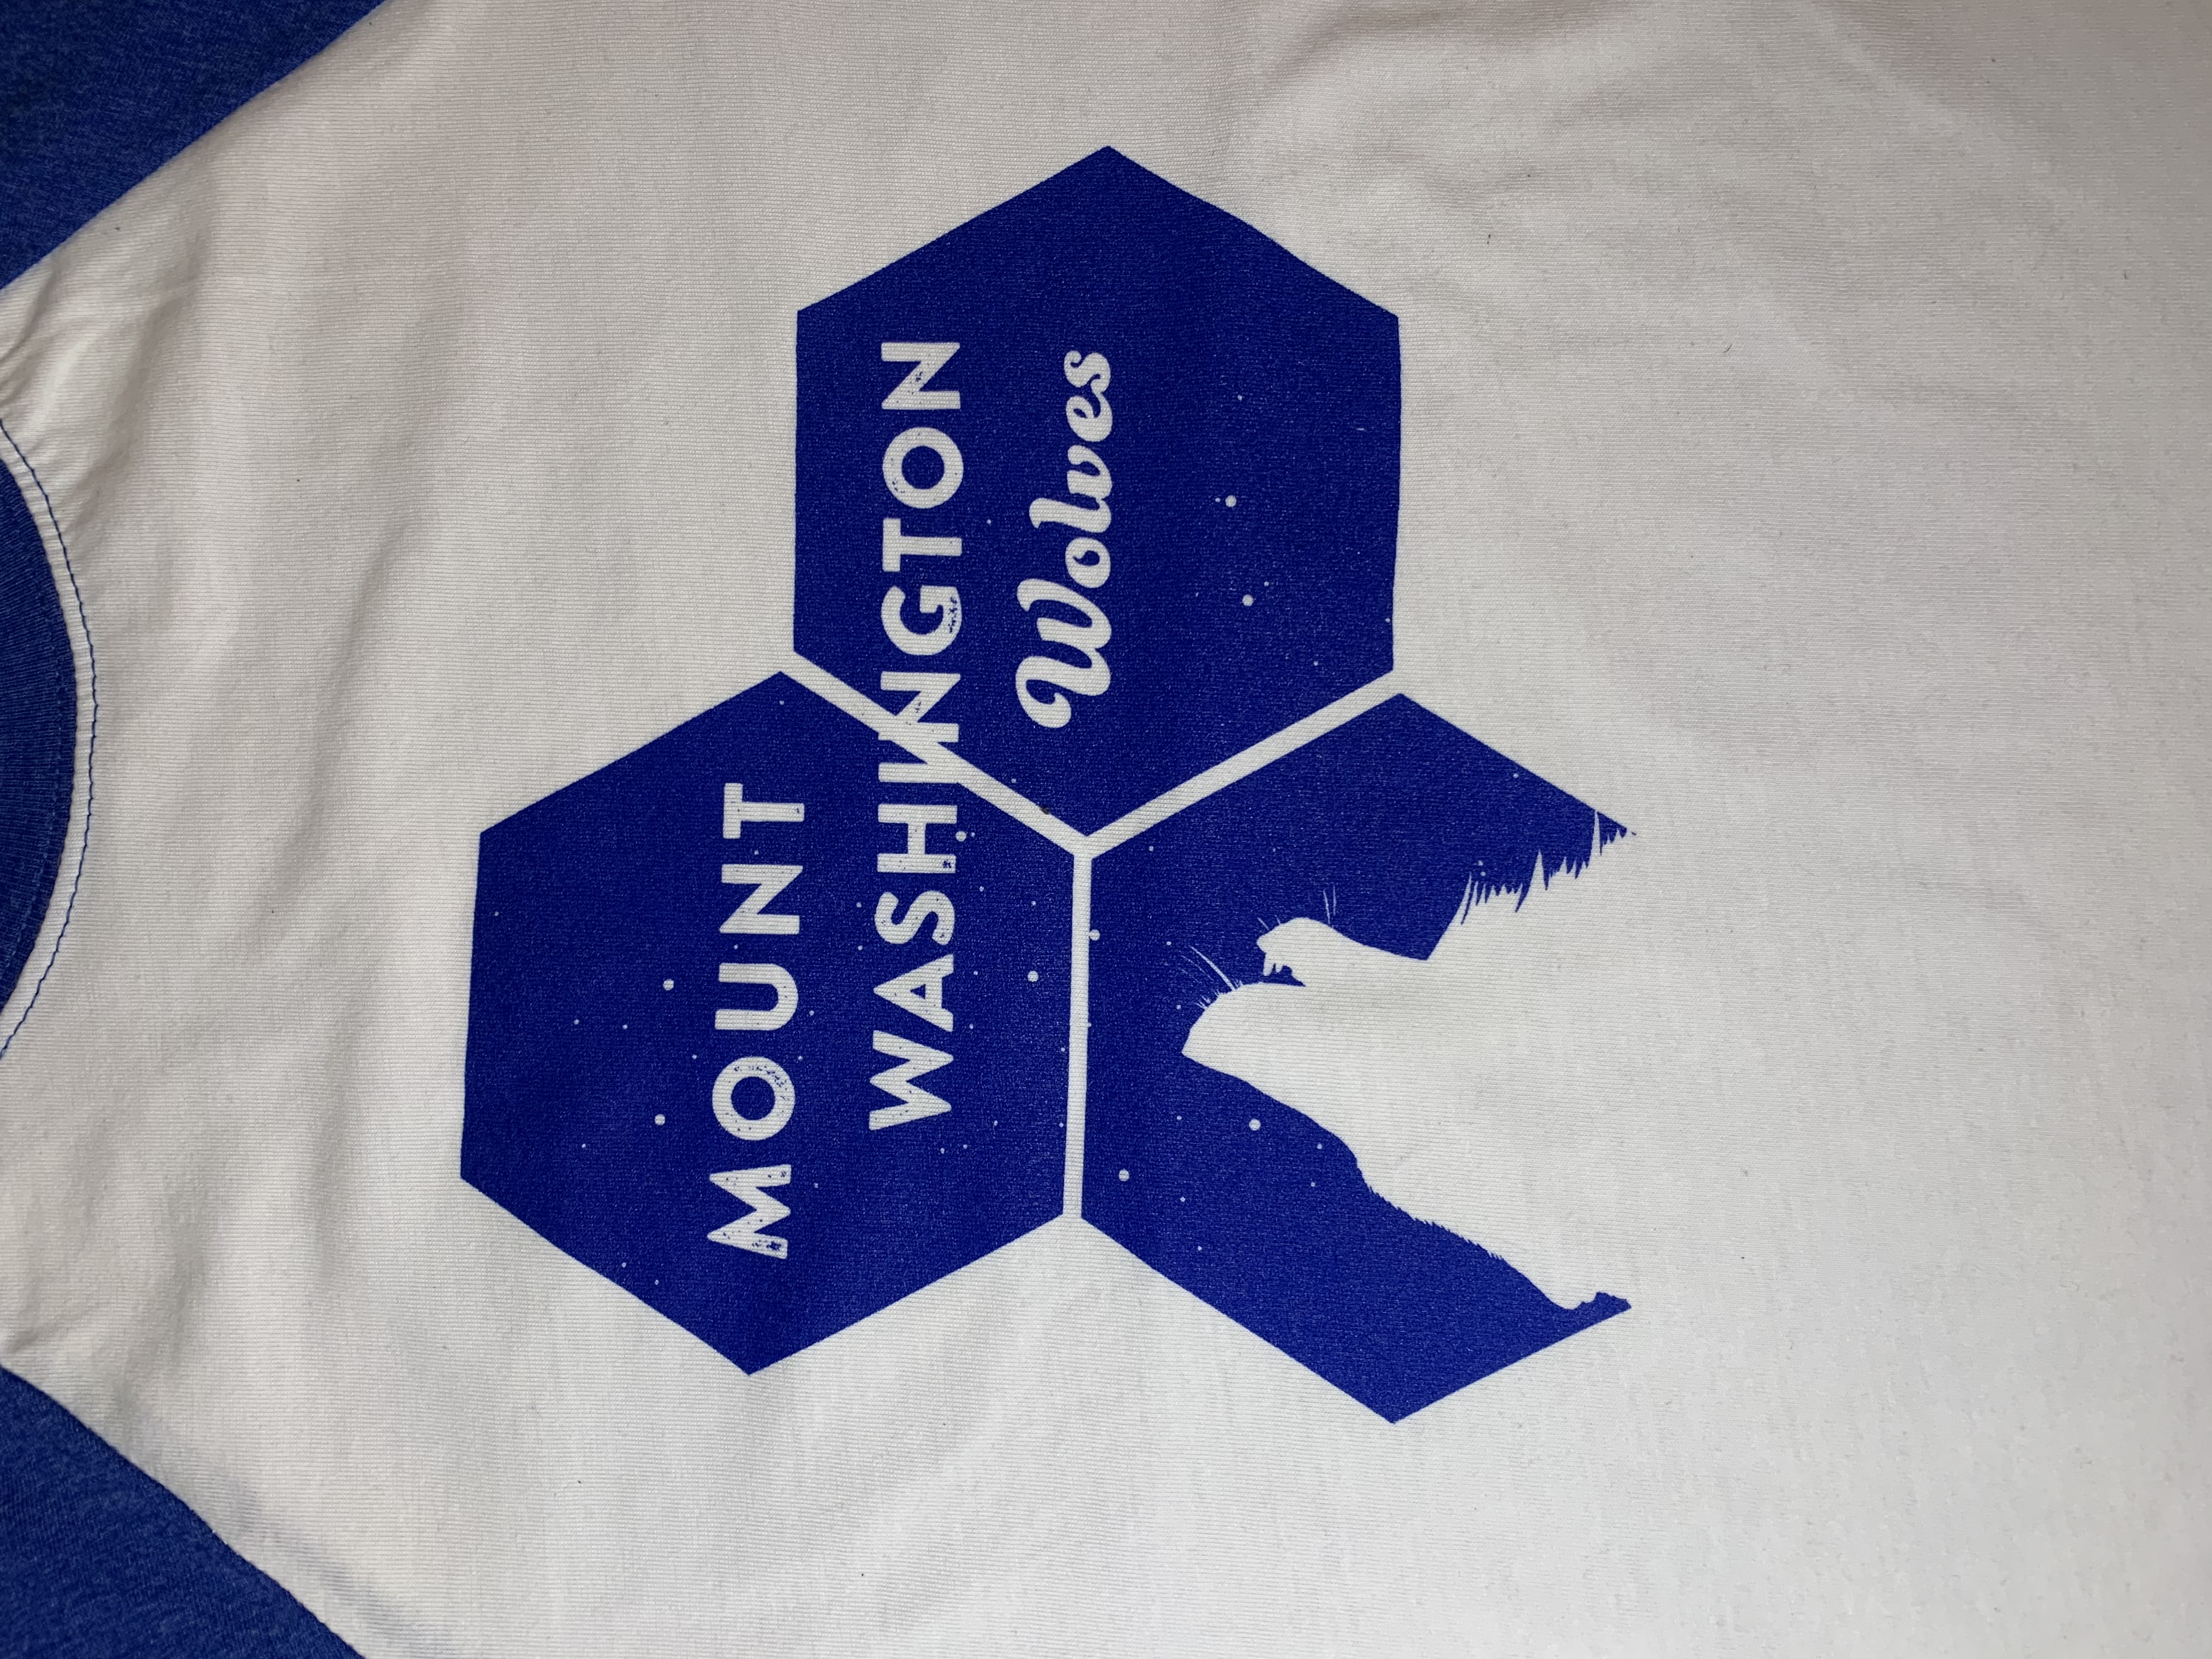 Youth Baseball Tee - White/Royal Blue Howling Wolf Hex